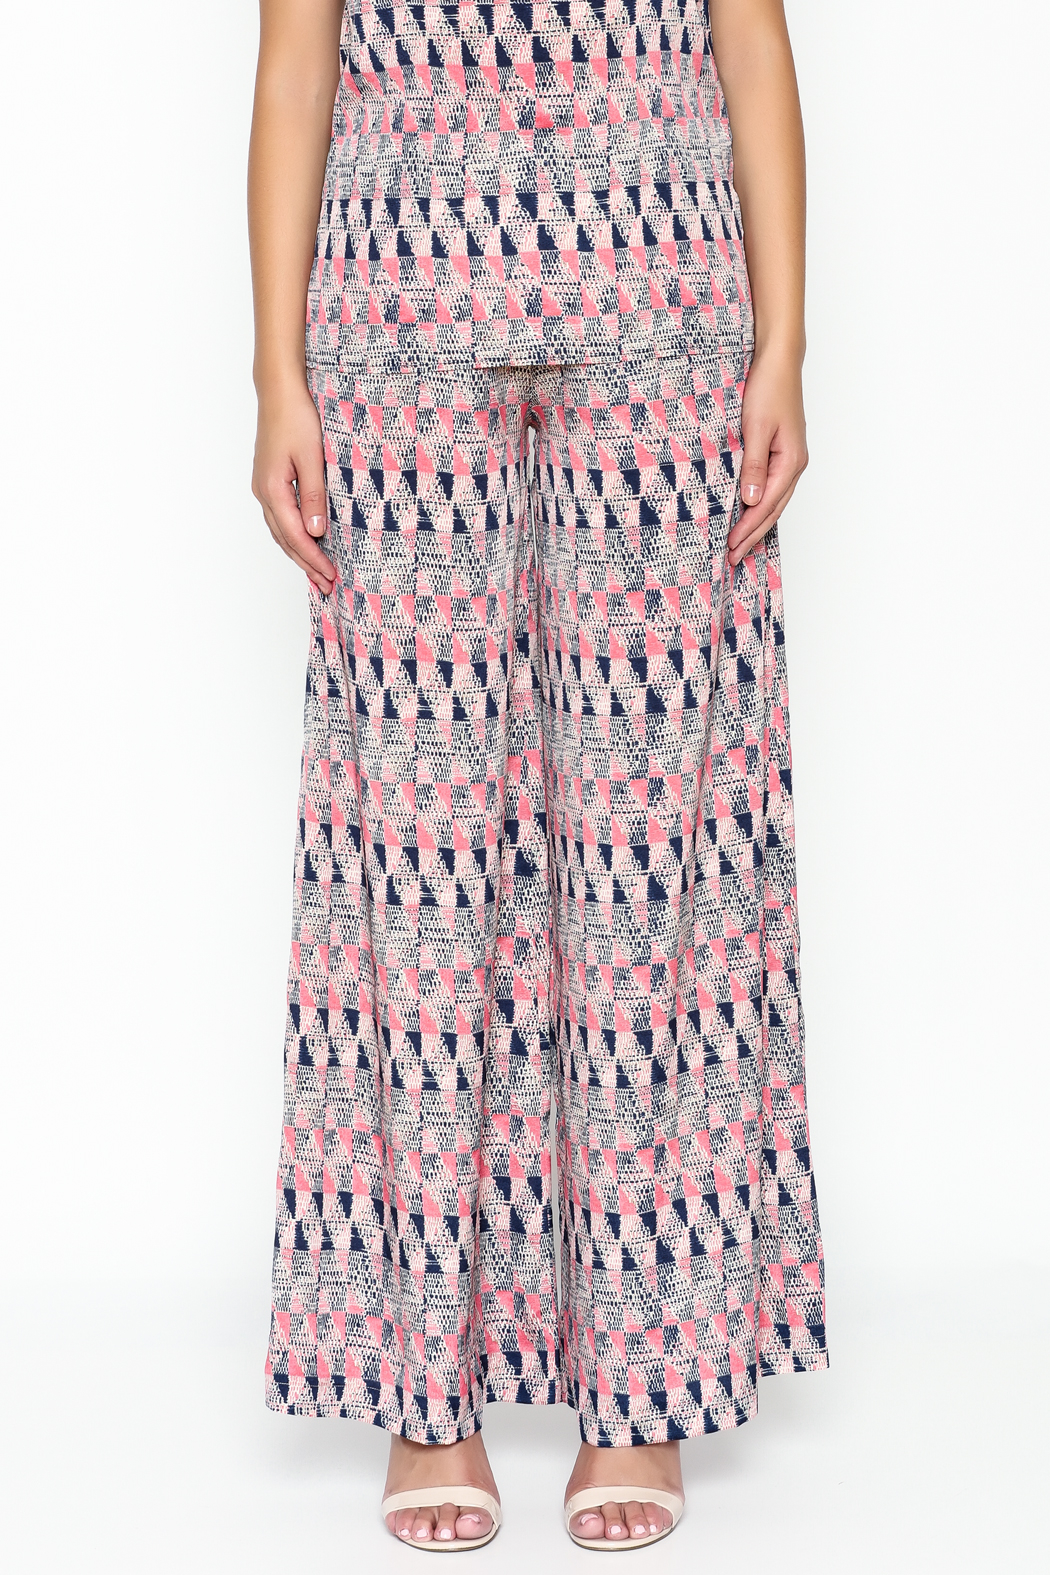 Julie Dorst Chelsea Palazzo Pants - Front Full Image